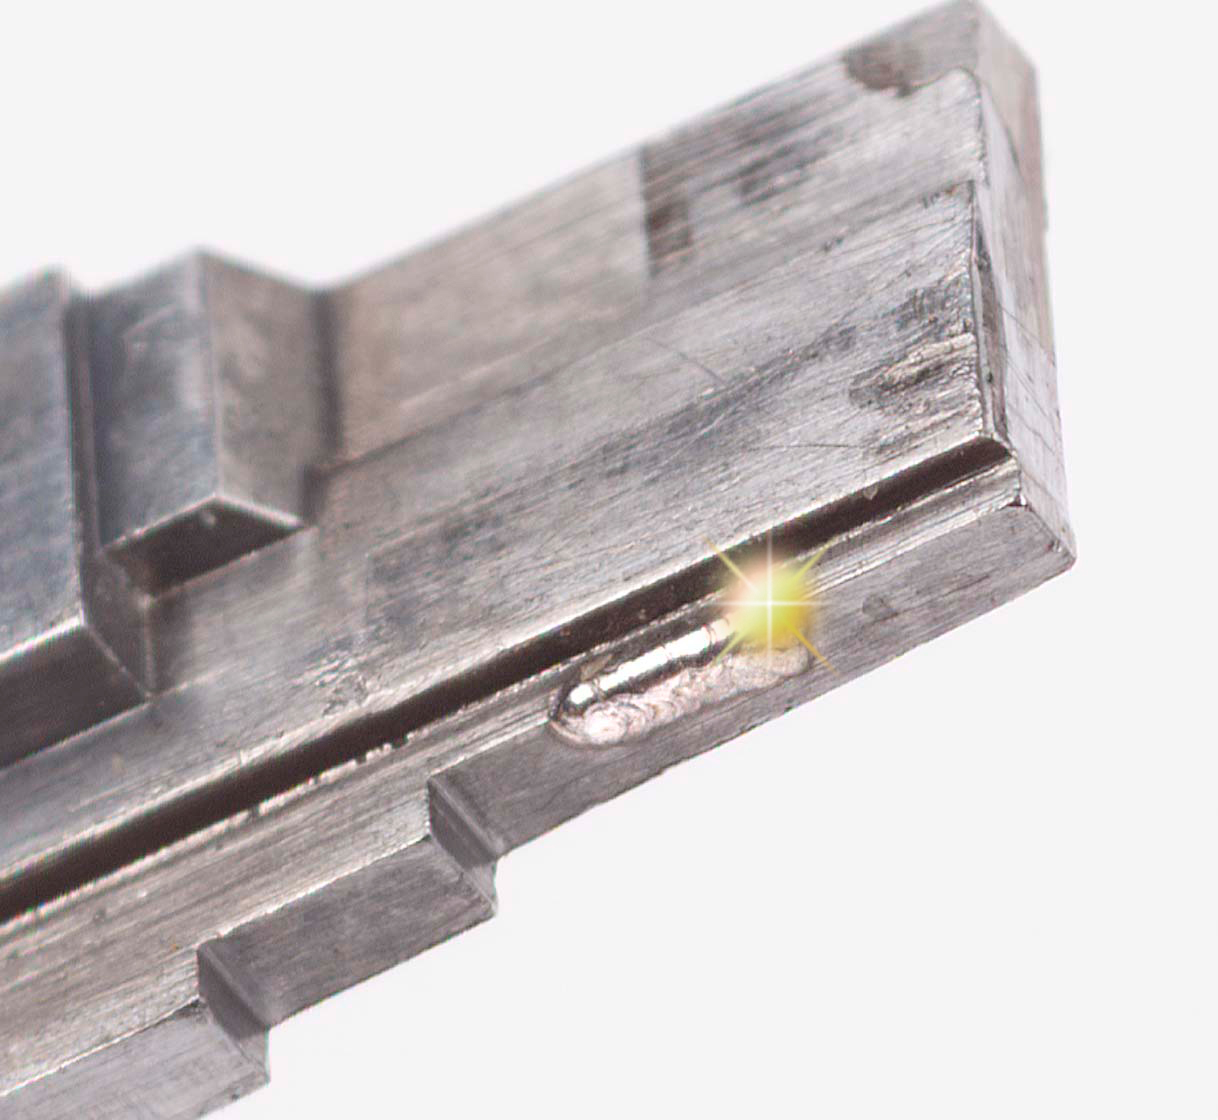 Micro Laser Welding with Filler Wire